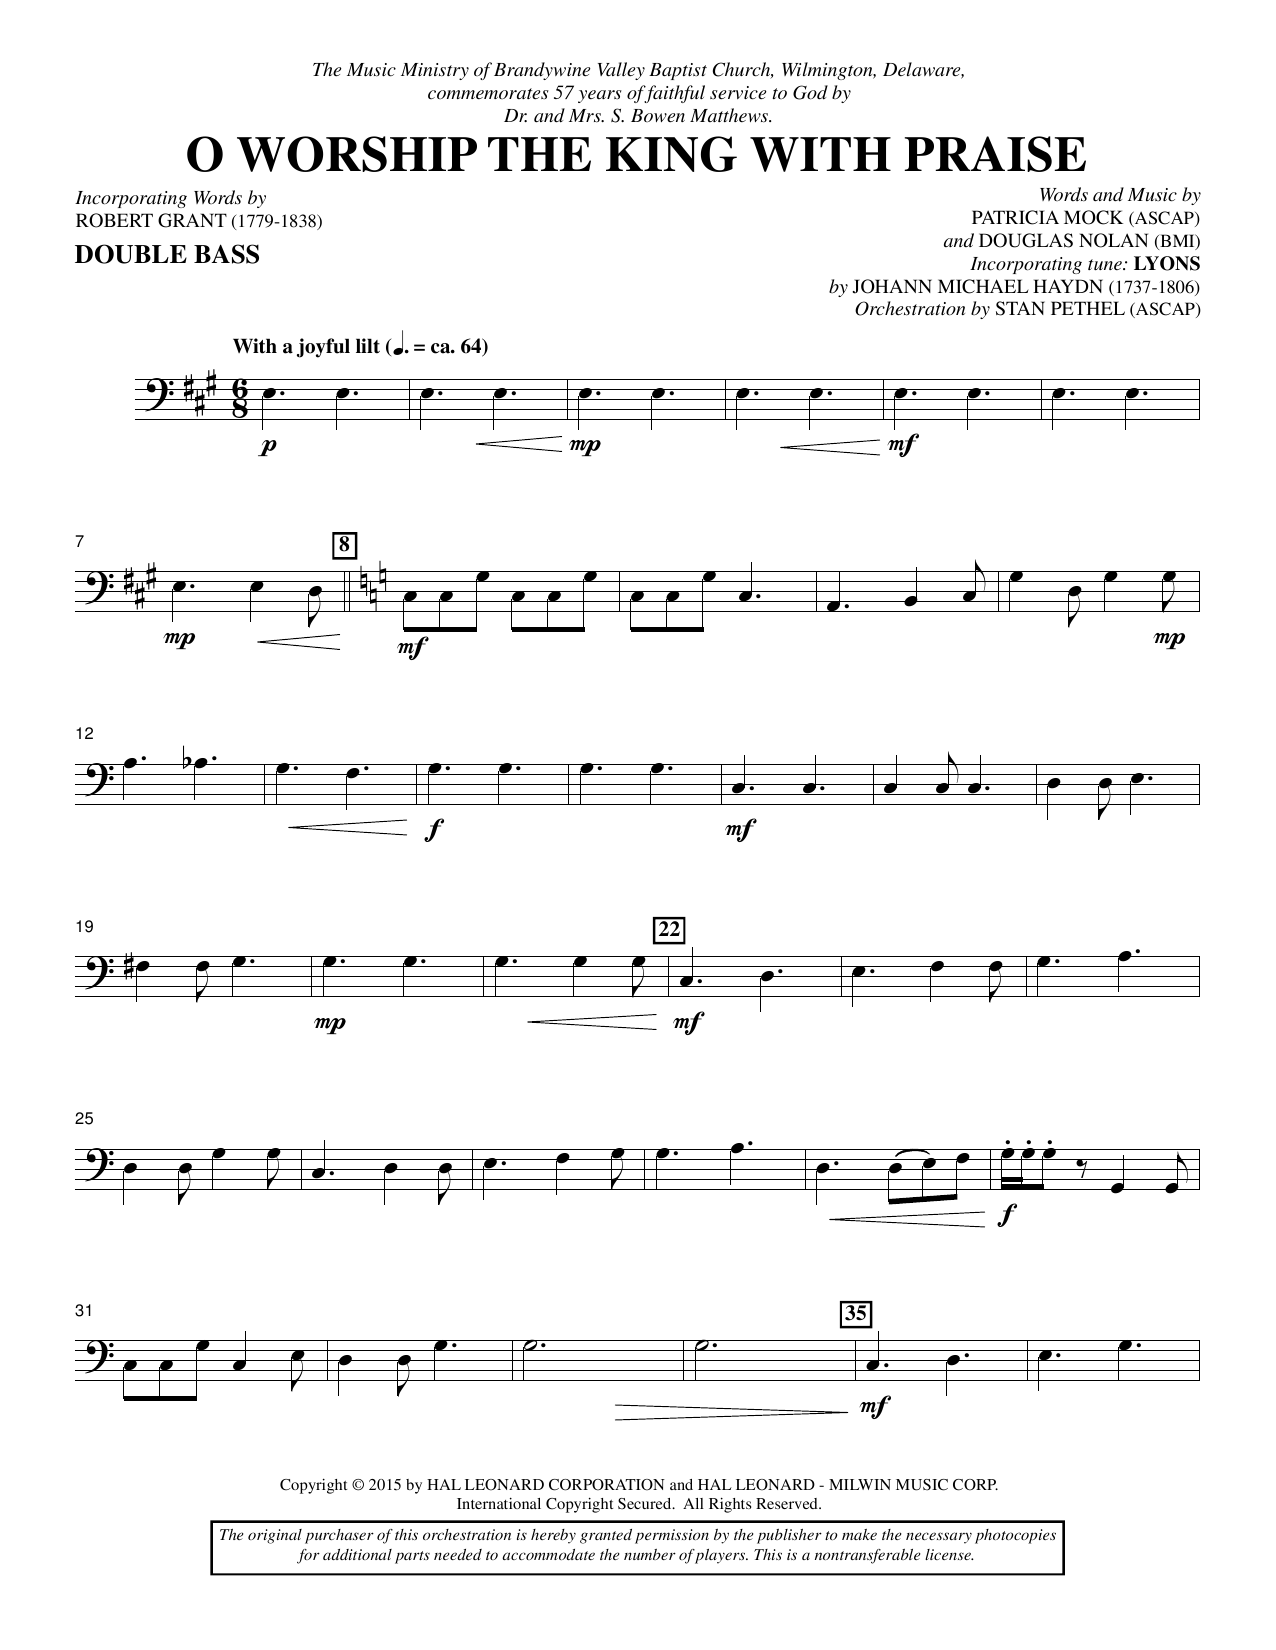 O Worship the King with Praise - Double Bass sheet music